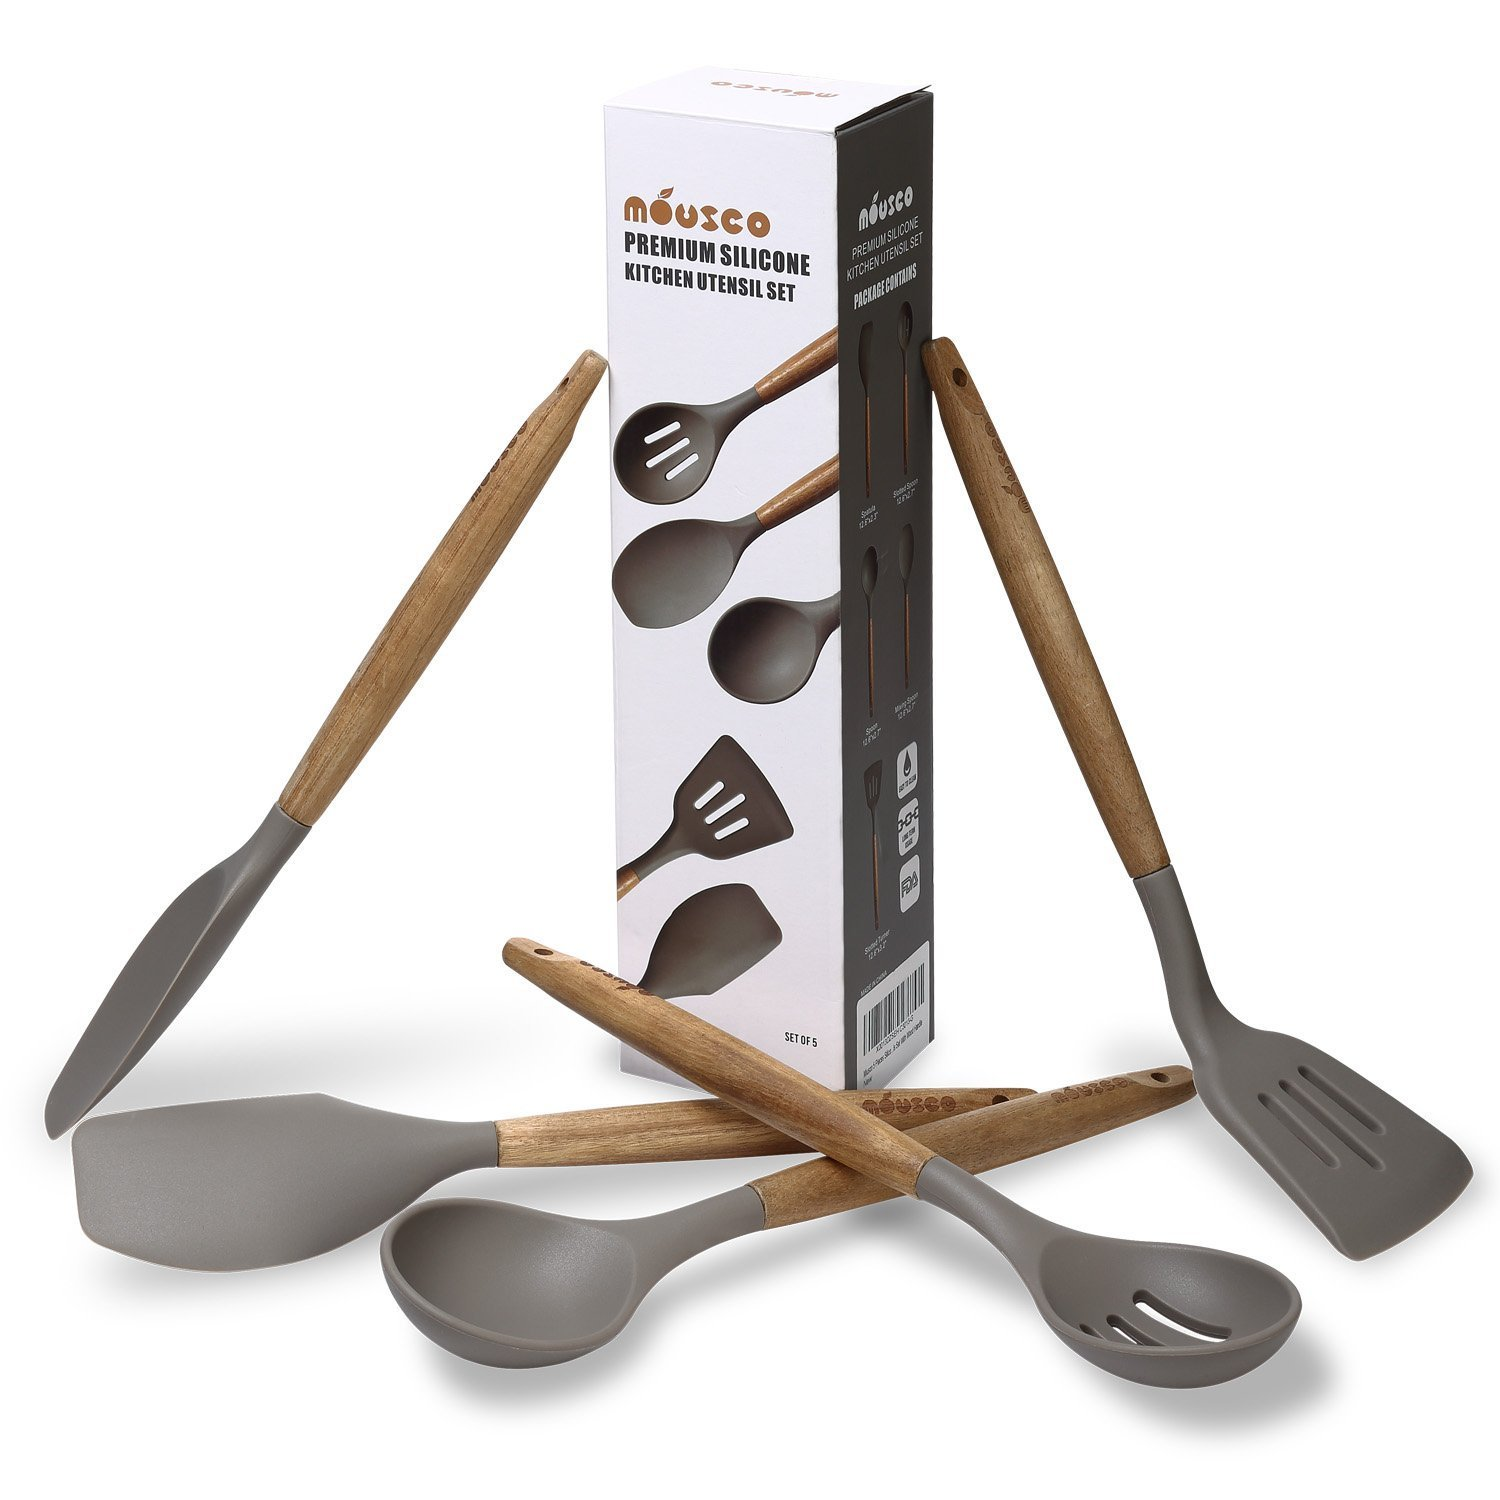 5 Piece Silicone Cooking Utensil Set with Natural Acacia Hard Wood Handle - Grey UK Plaque